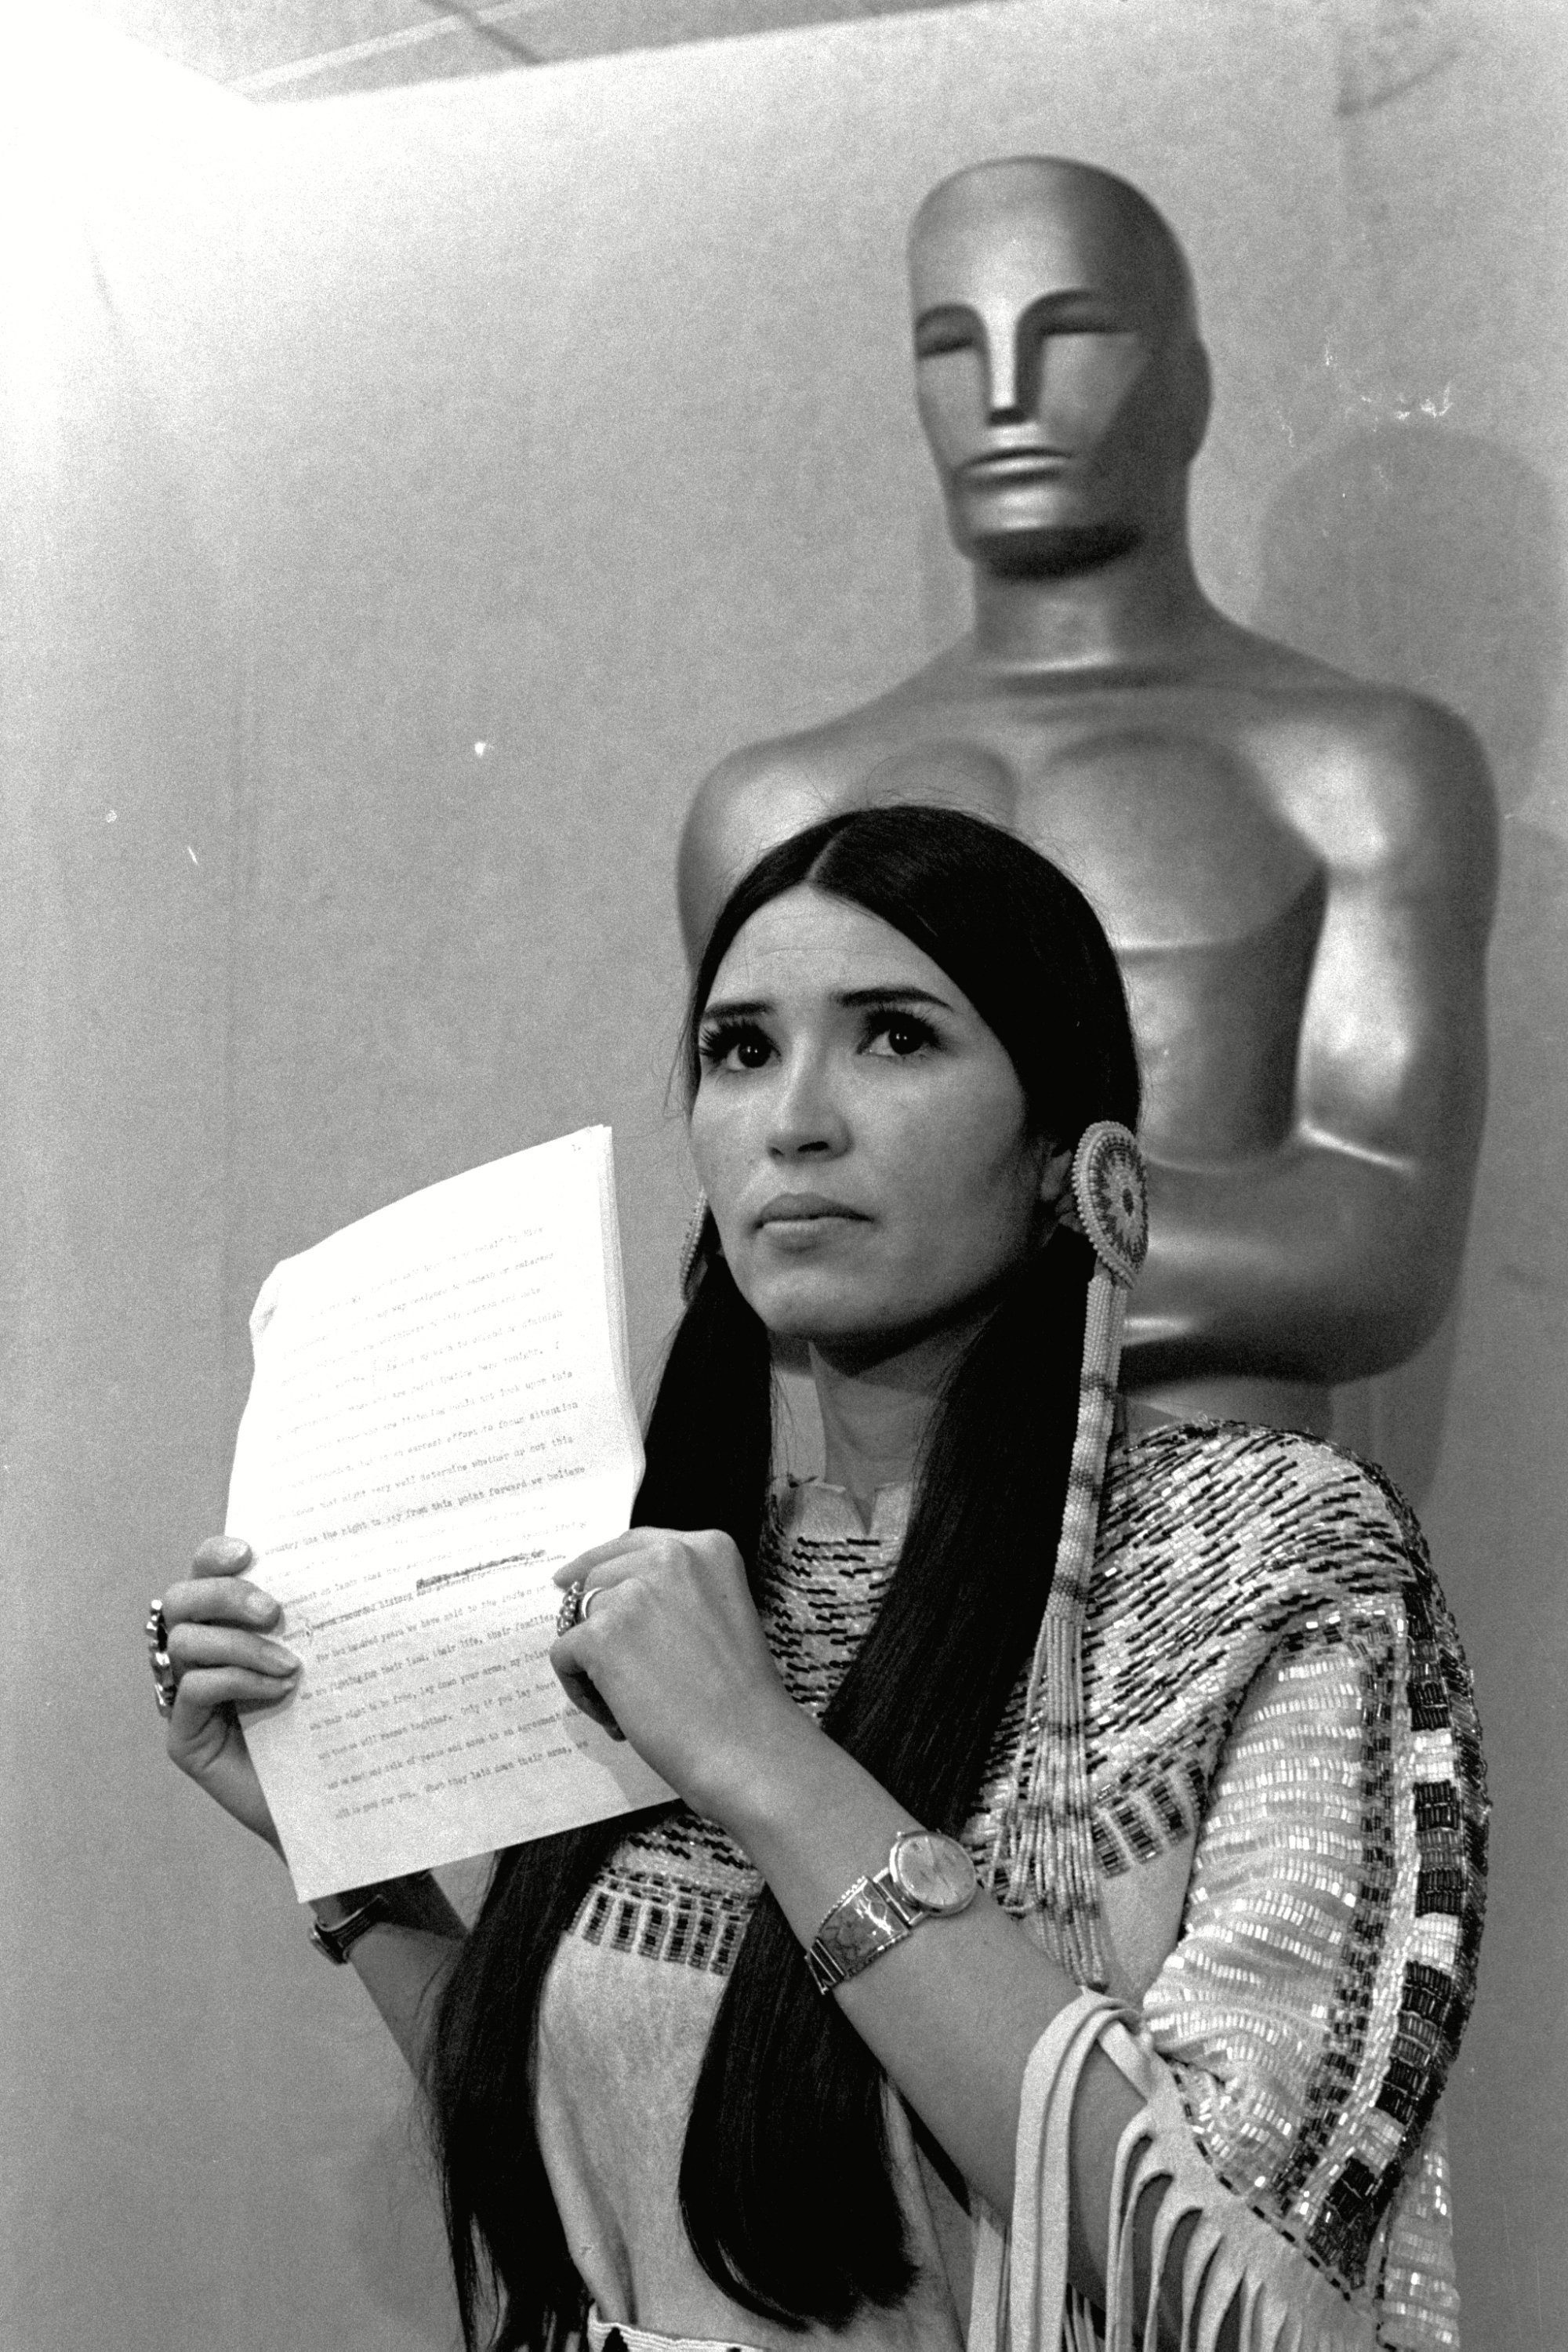 """Mandatory Credit: Photo by Uncredited/AP/Shutterstock (9427895a) Oscars Brando. Sacheen Littlefeather, tells the audience at the Academy Awards ceremony that Marlon Brando was declining to accept his Oscar as best actor for his role in """"The Godfather."""" The move was meant to protest Hollywood's treatment of American Indians Oscars-Politics, LOS ANGELES, USA - 27 Mar 1973"""